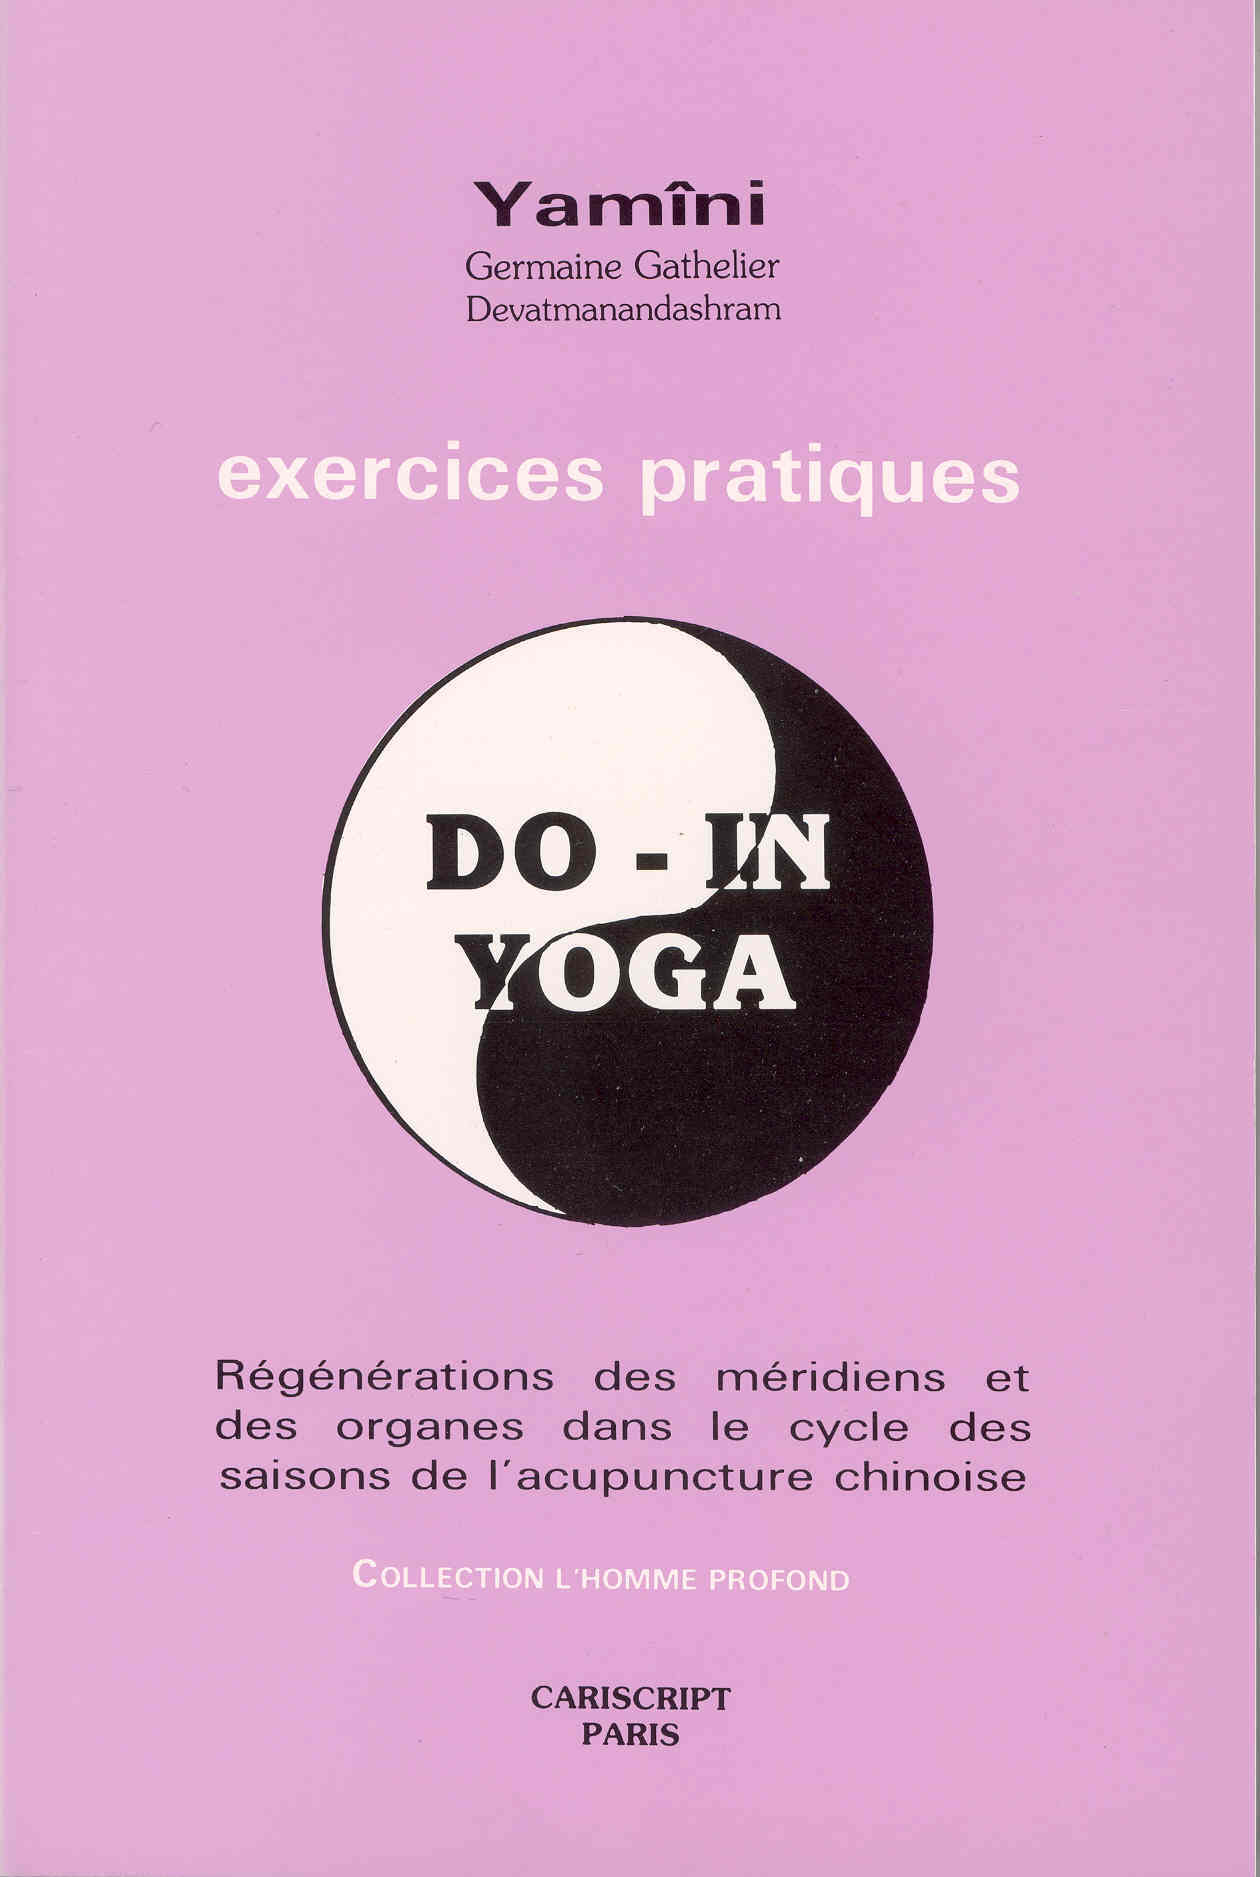 DO-IN, YOGA. EXERCICES PRATIQUES